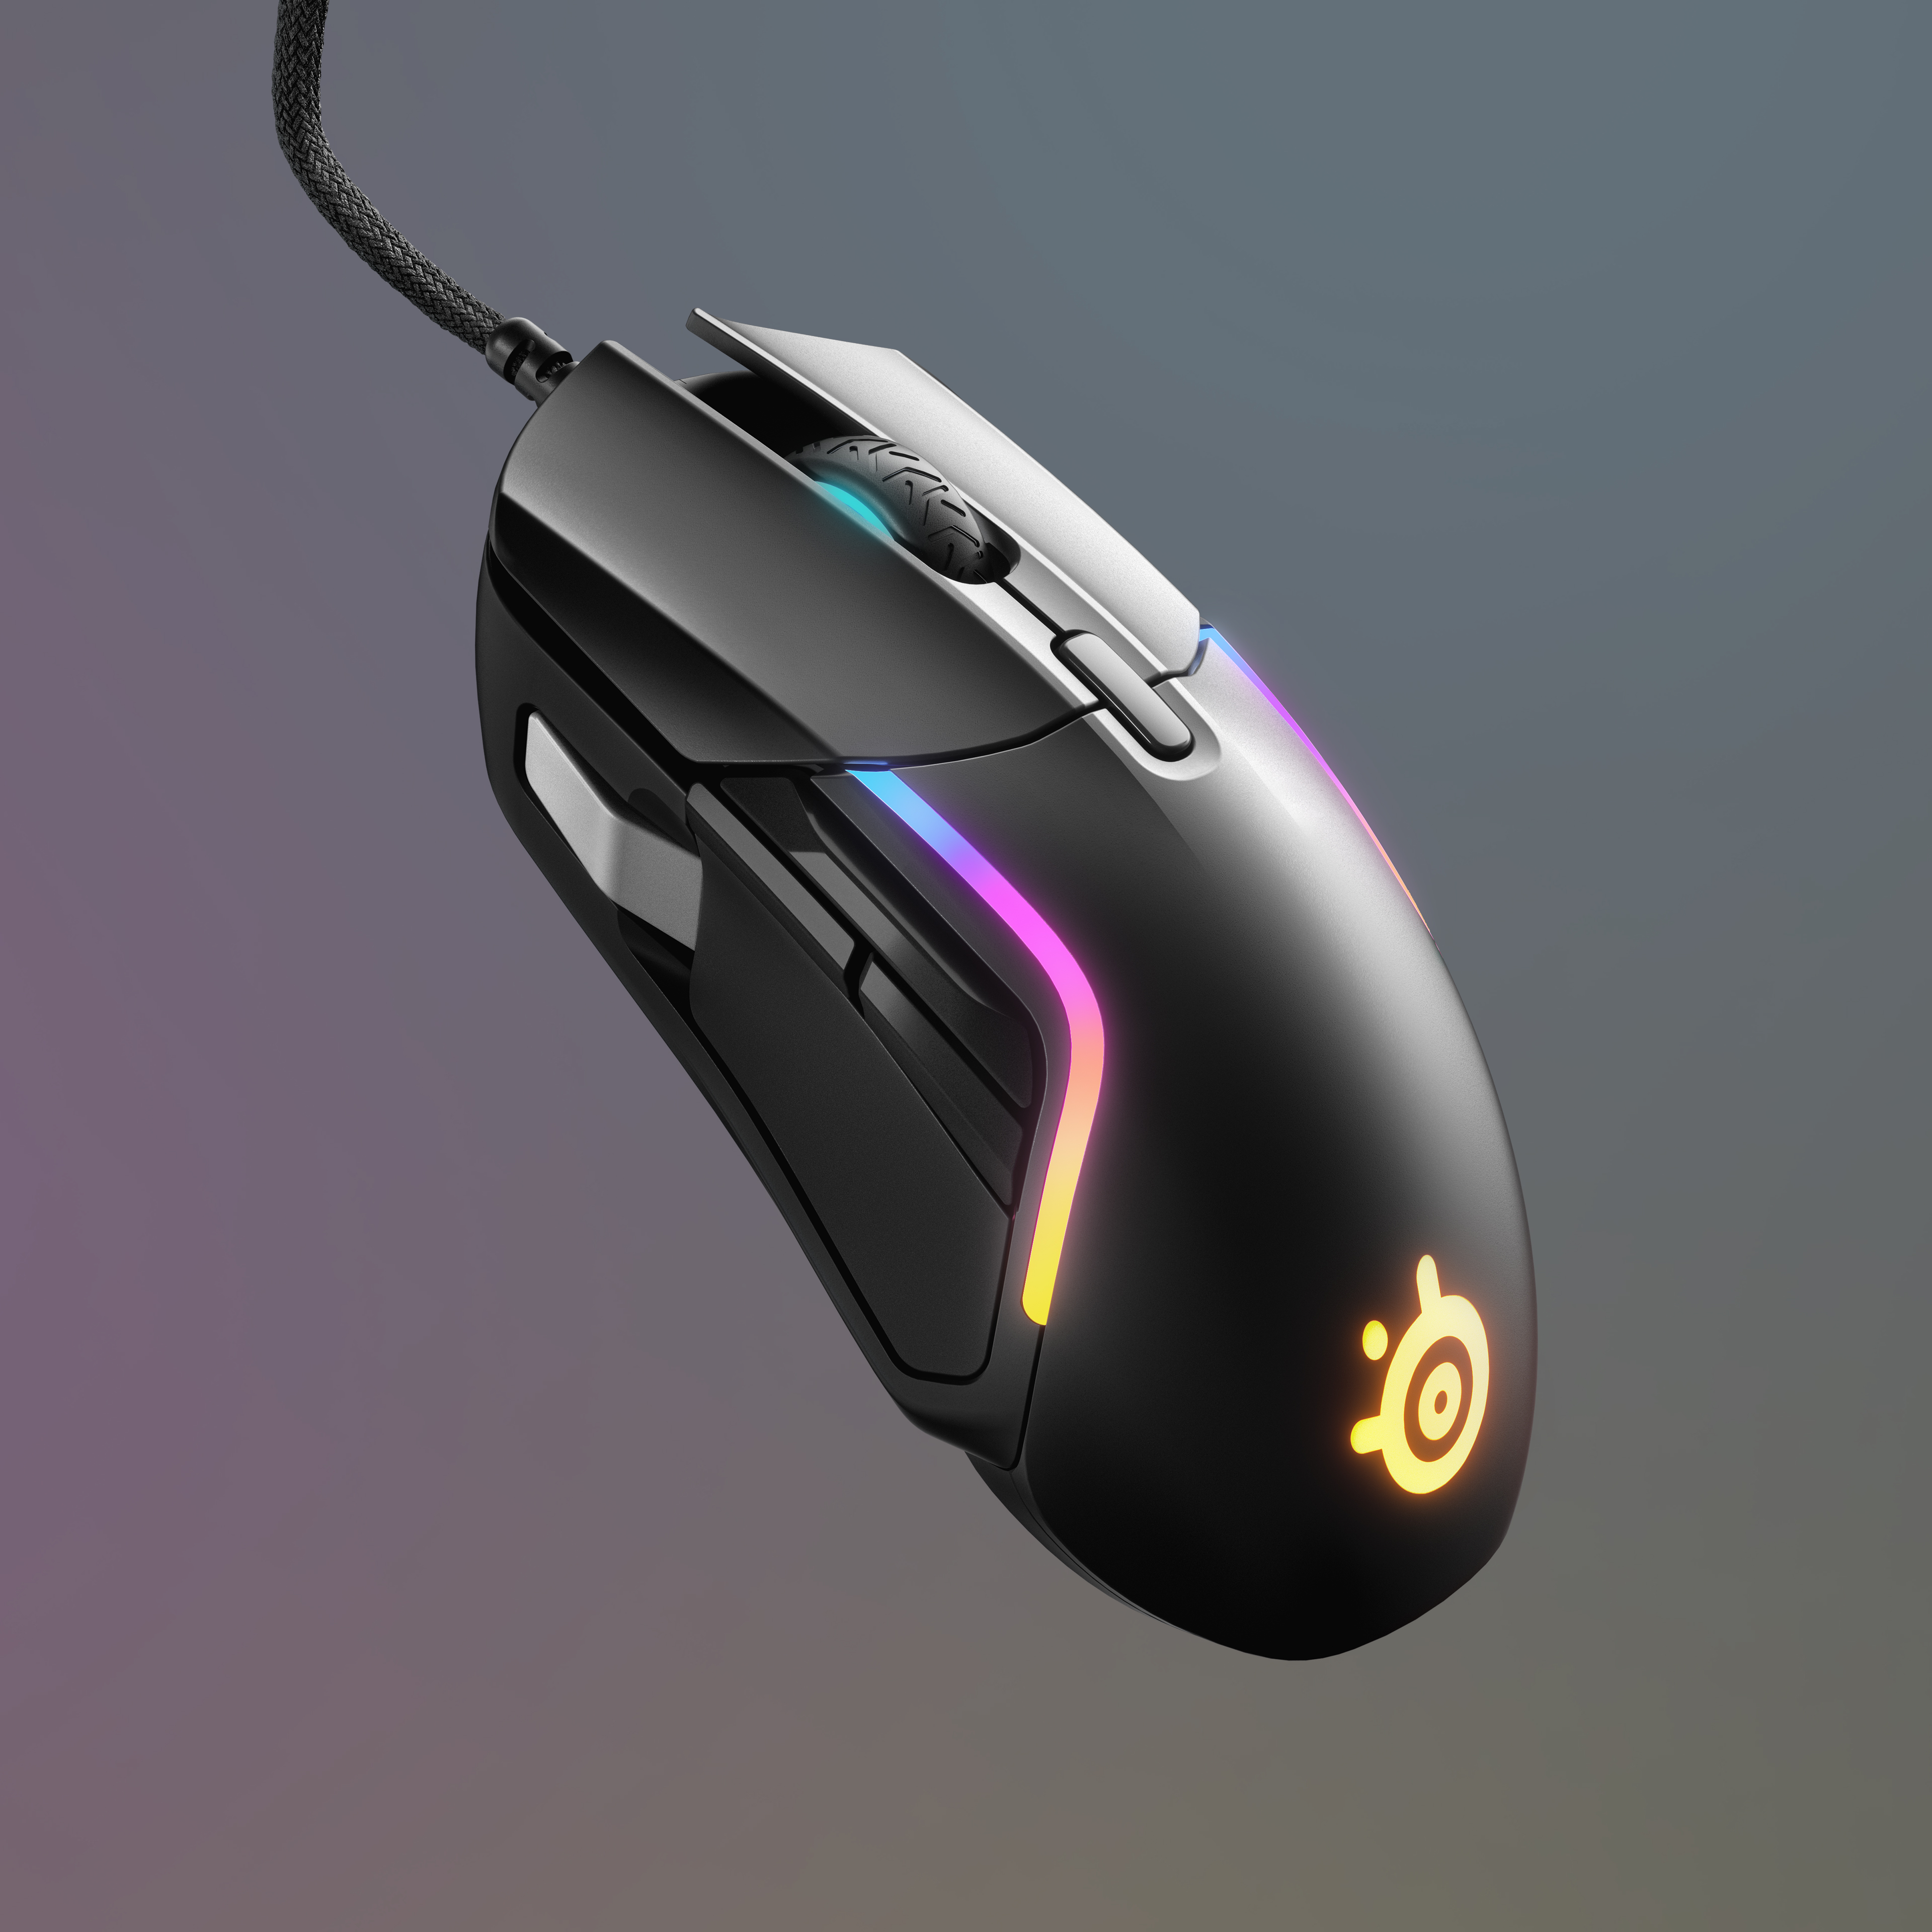 Rival 5 mouse